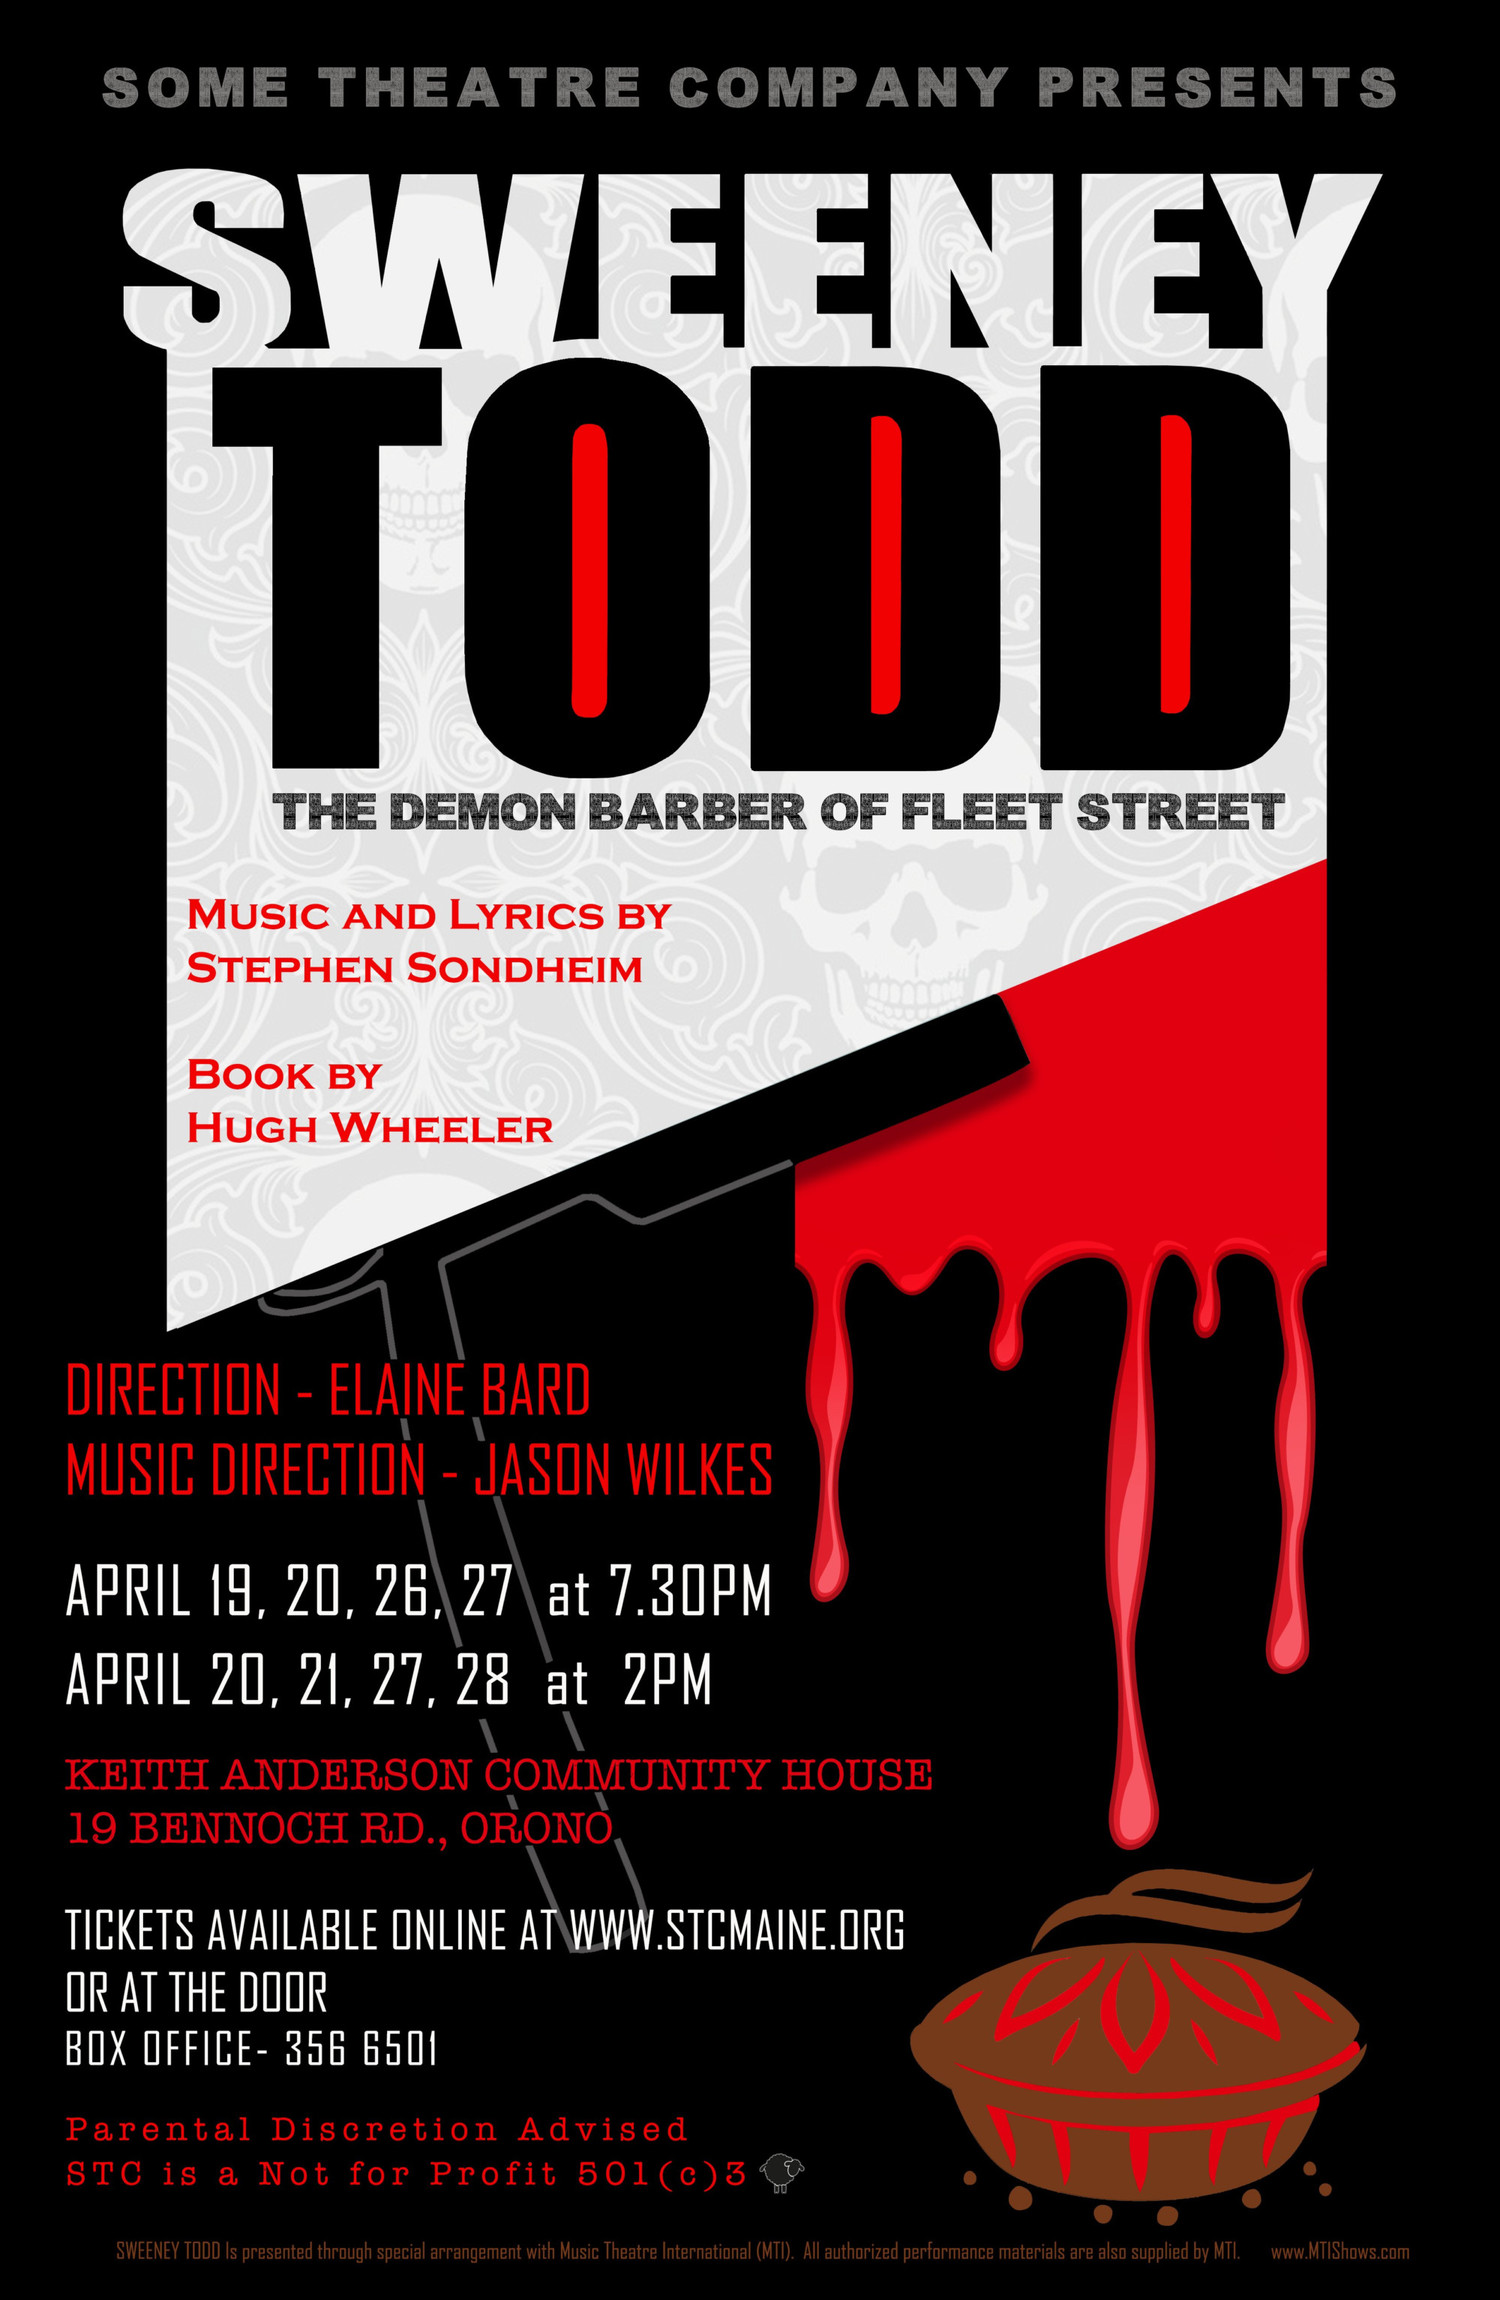 BWW Feature: SWEENEY TODD TICKETS GO ON SALE! at Some Theatre Company